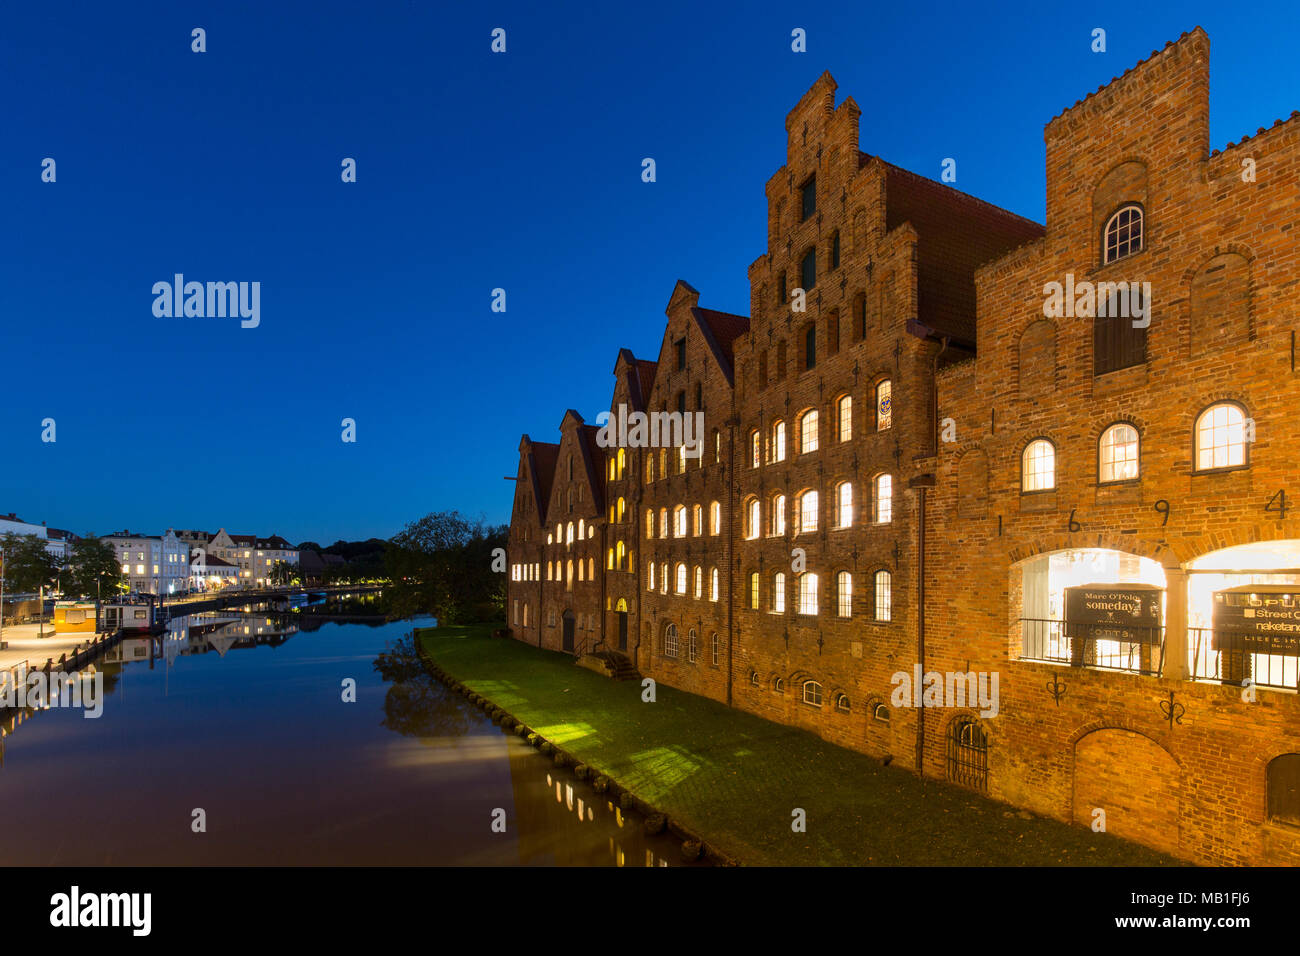 Salzspeicher / salt storehouses at night along the Upper Trave River in the Hanseatic town Lübeck / Luebeck, Schleswig-Holstein, Germany - Stock Image